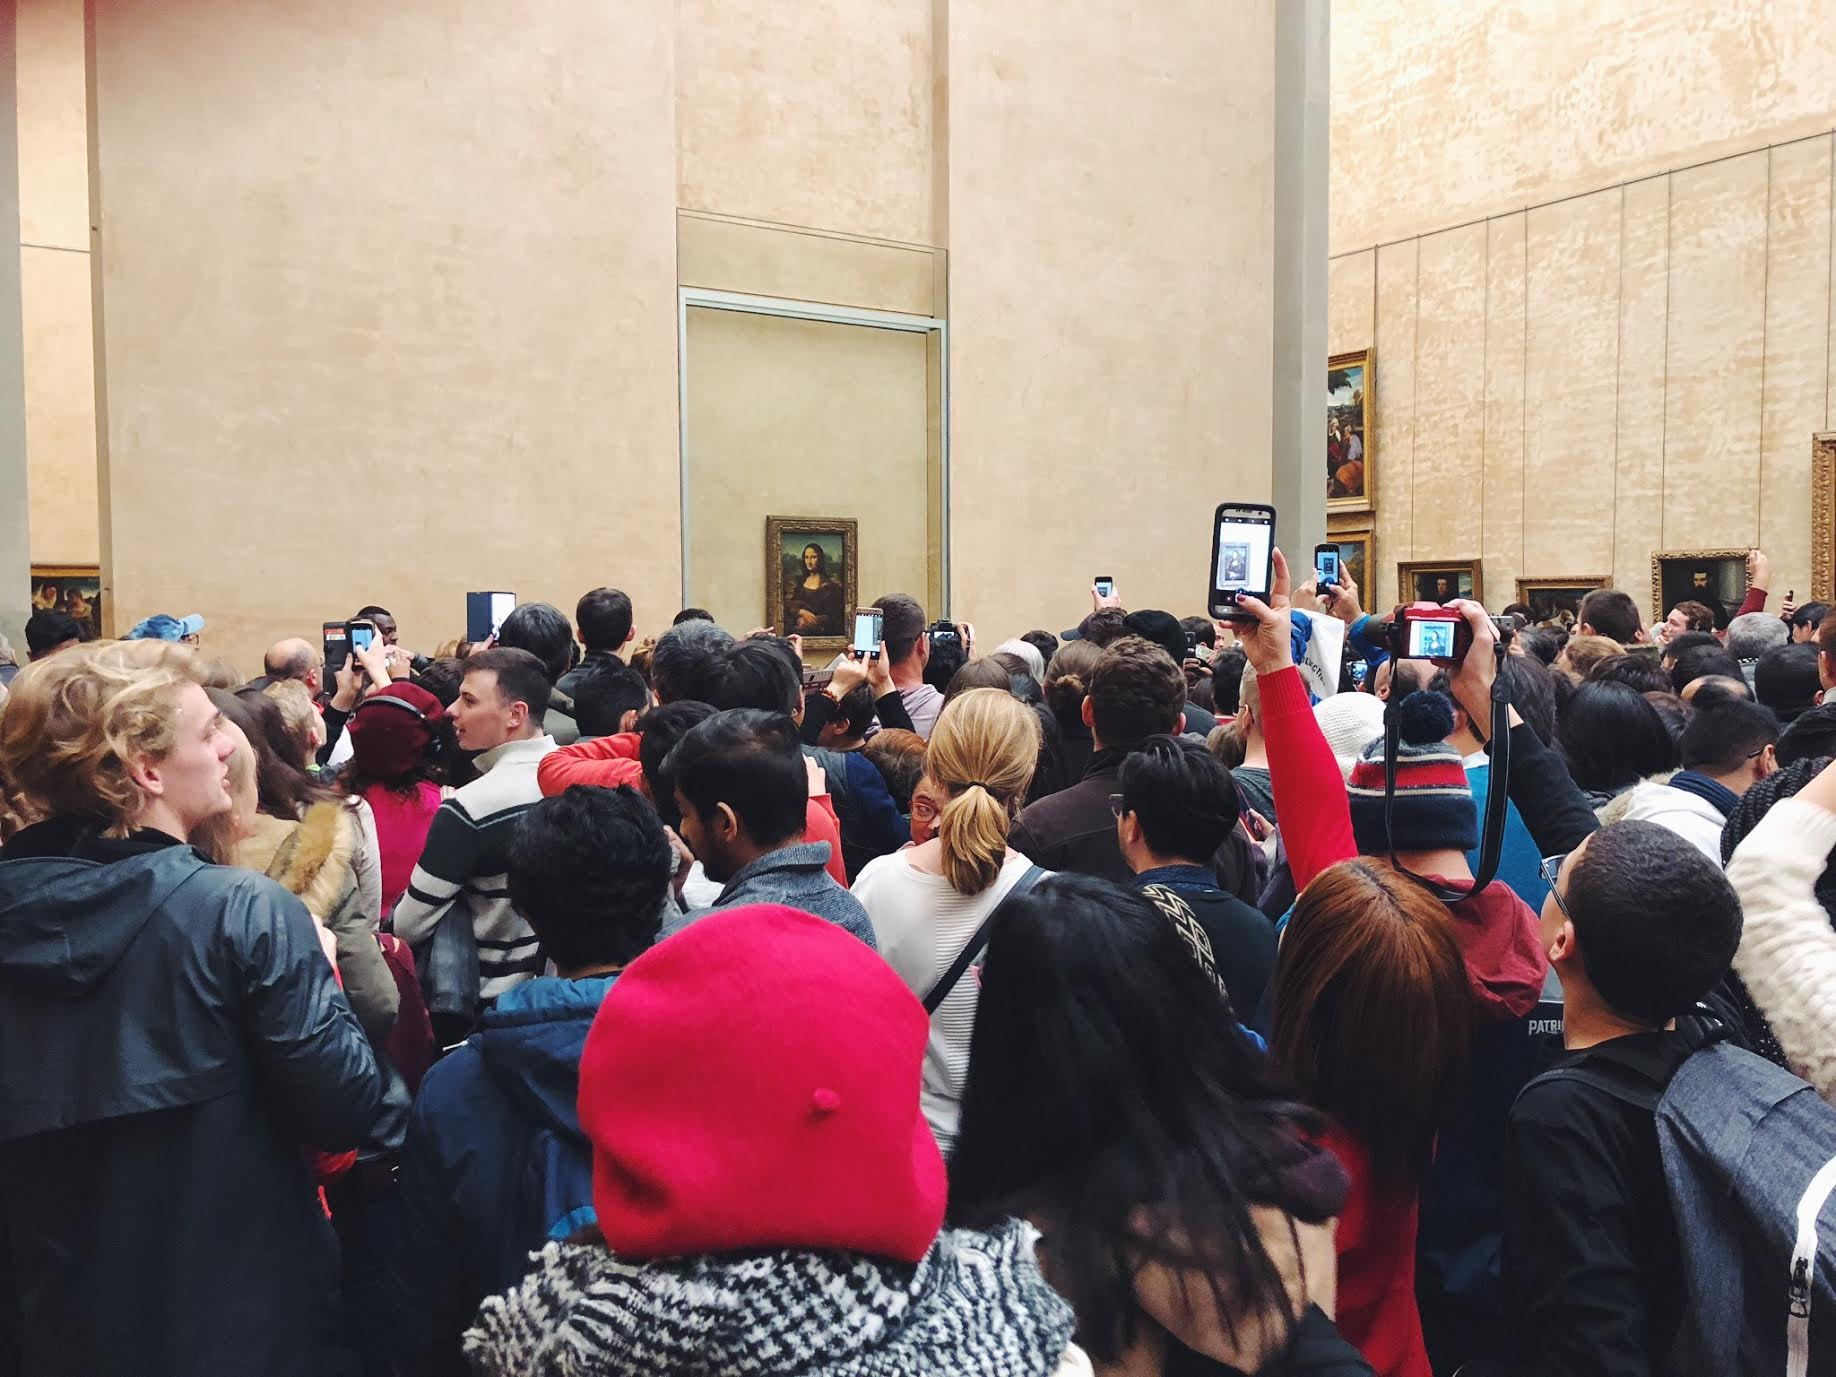 Muslim-travel-guide-Paris-Mona-Lisa-crowd.jpg